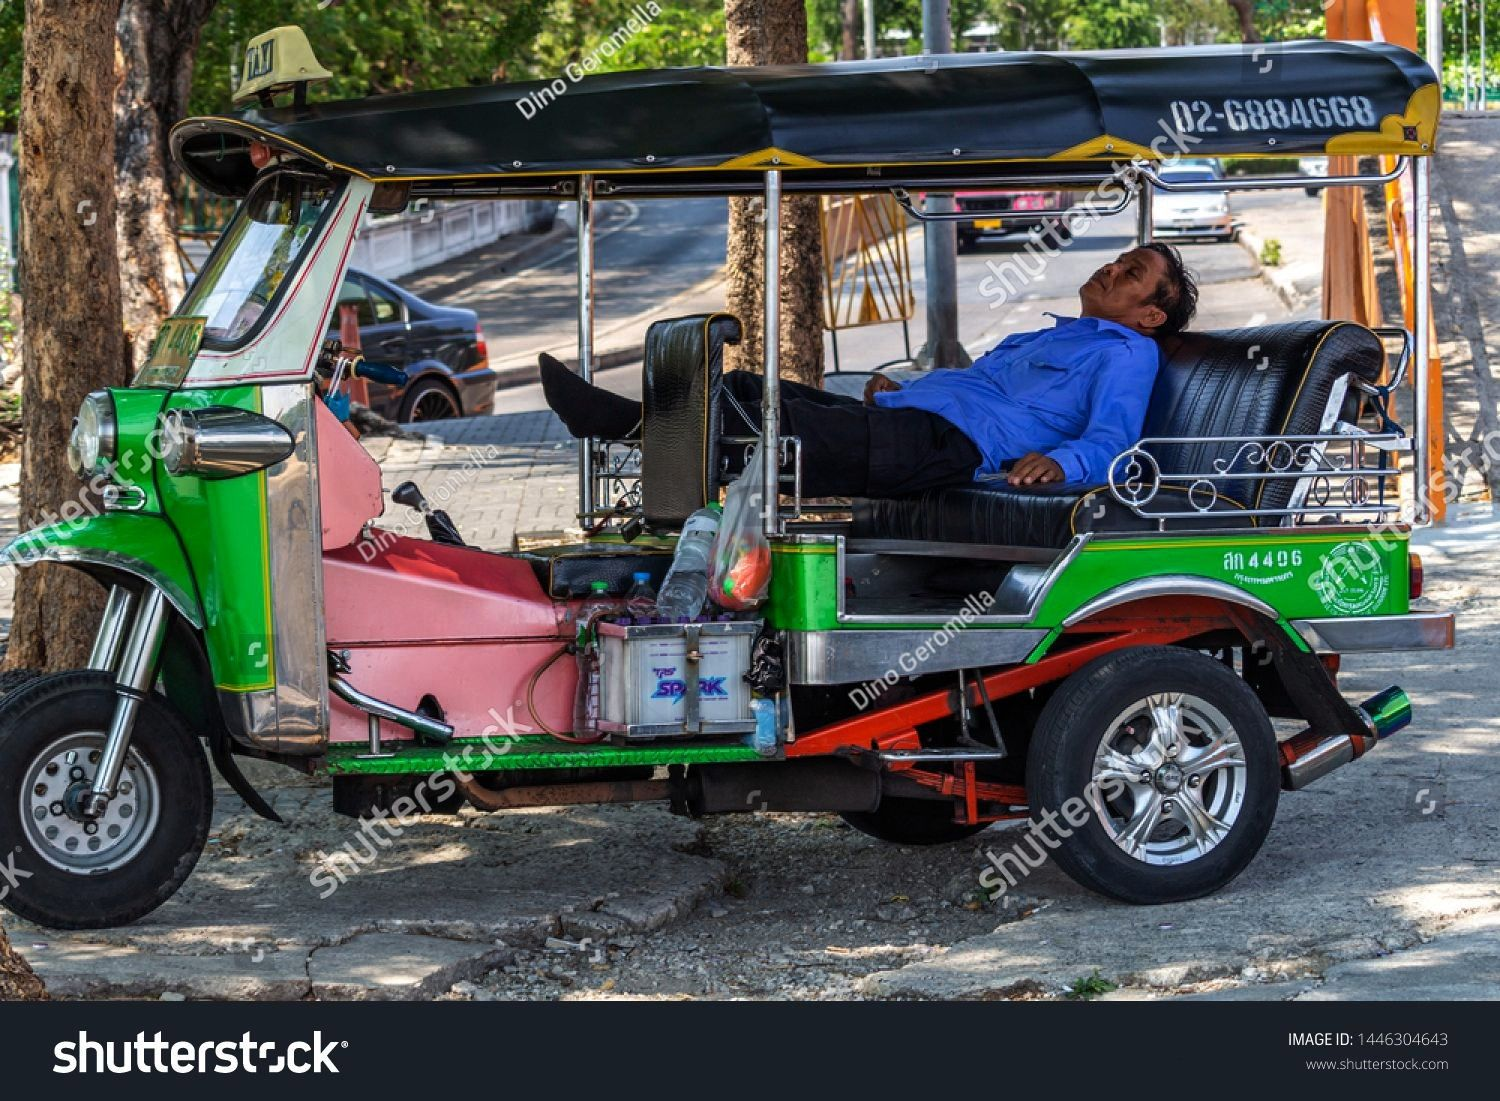 Thailand  April 14 2019 Taxi driver sleeping in his tuk tuk parked near the street Bangkok Thailand  April 14 2019 Taxi driver sleeping in his tuk tuk parked near the str...